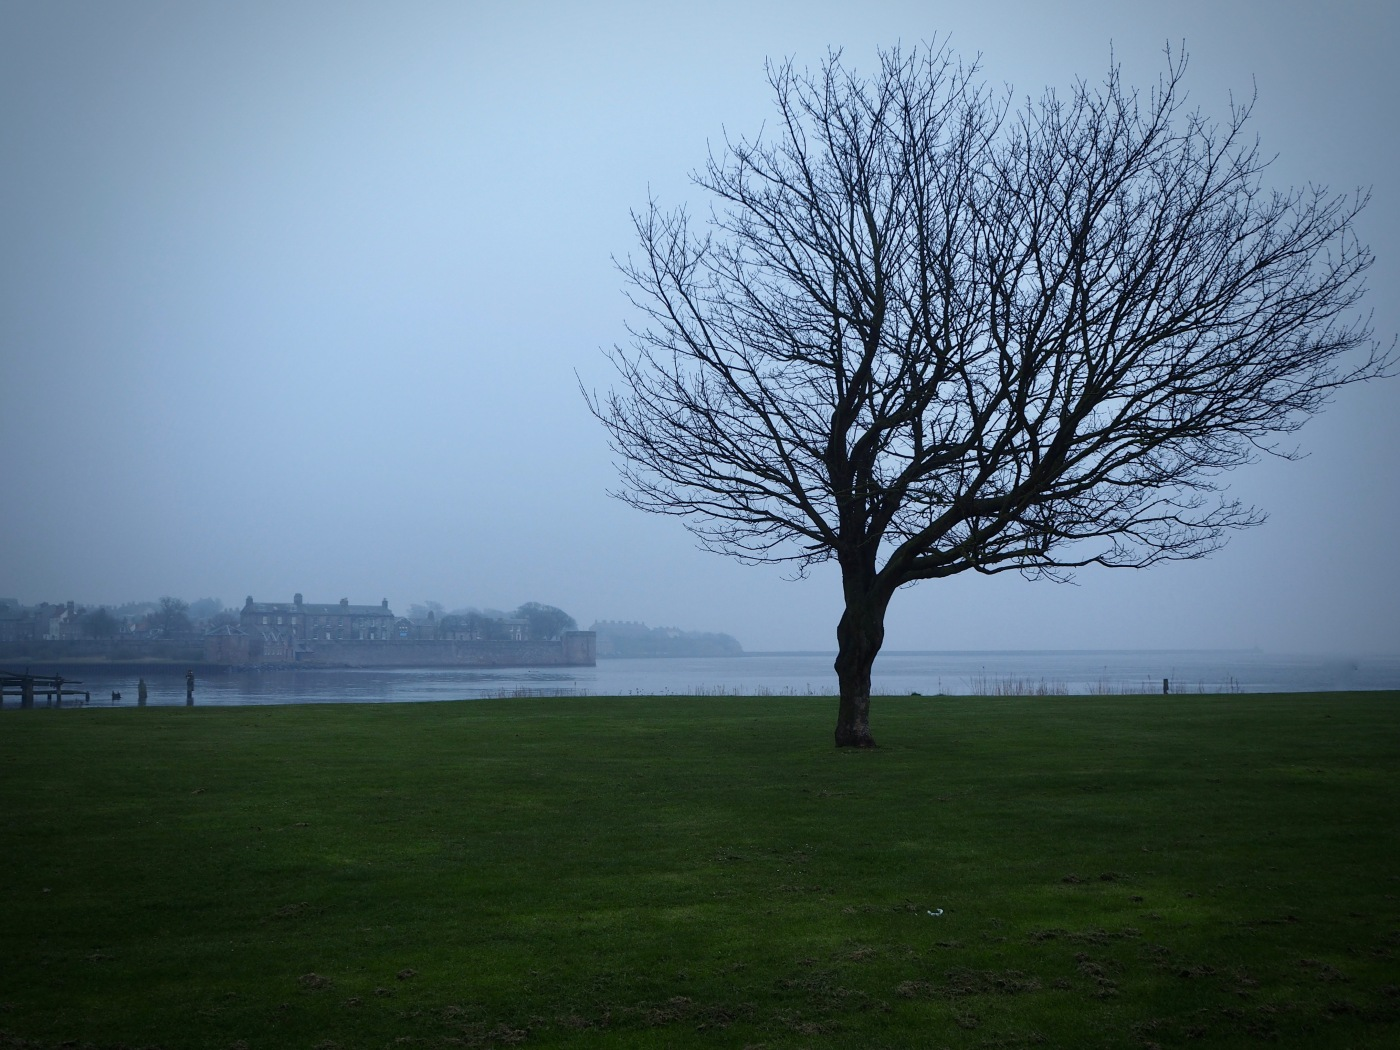 tree silhouette on misty day Berwick